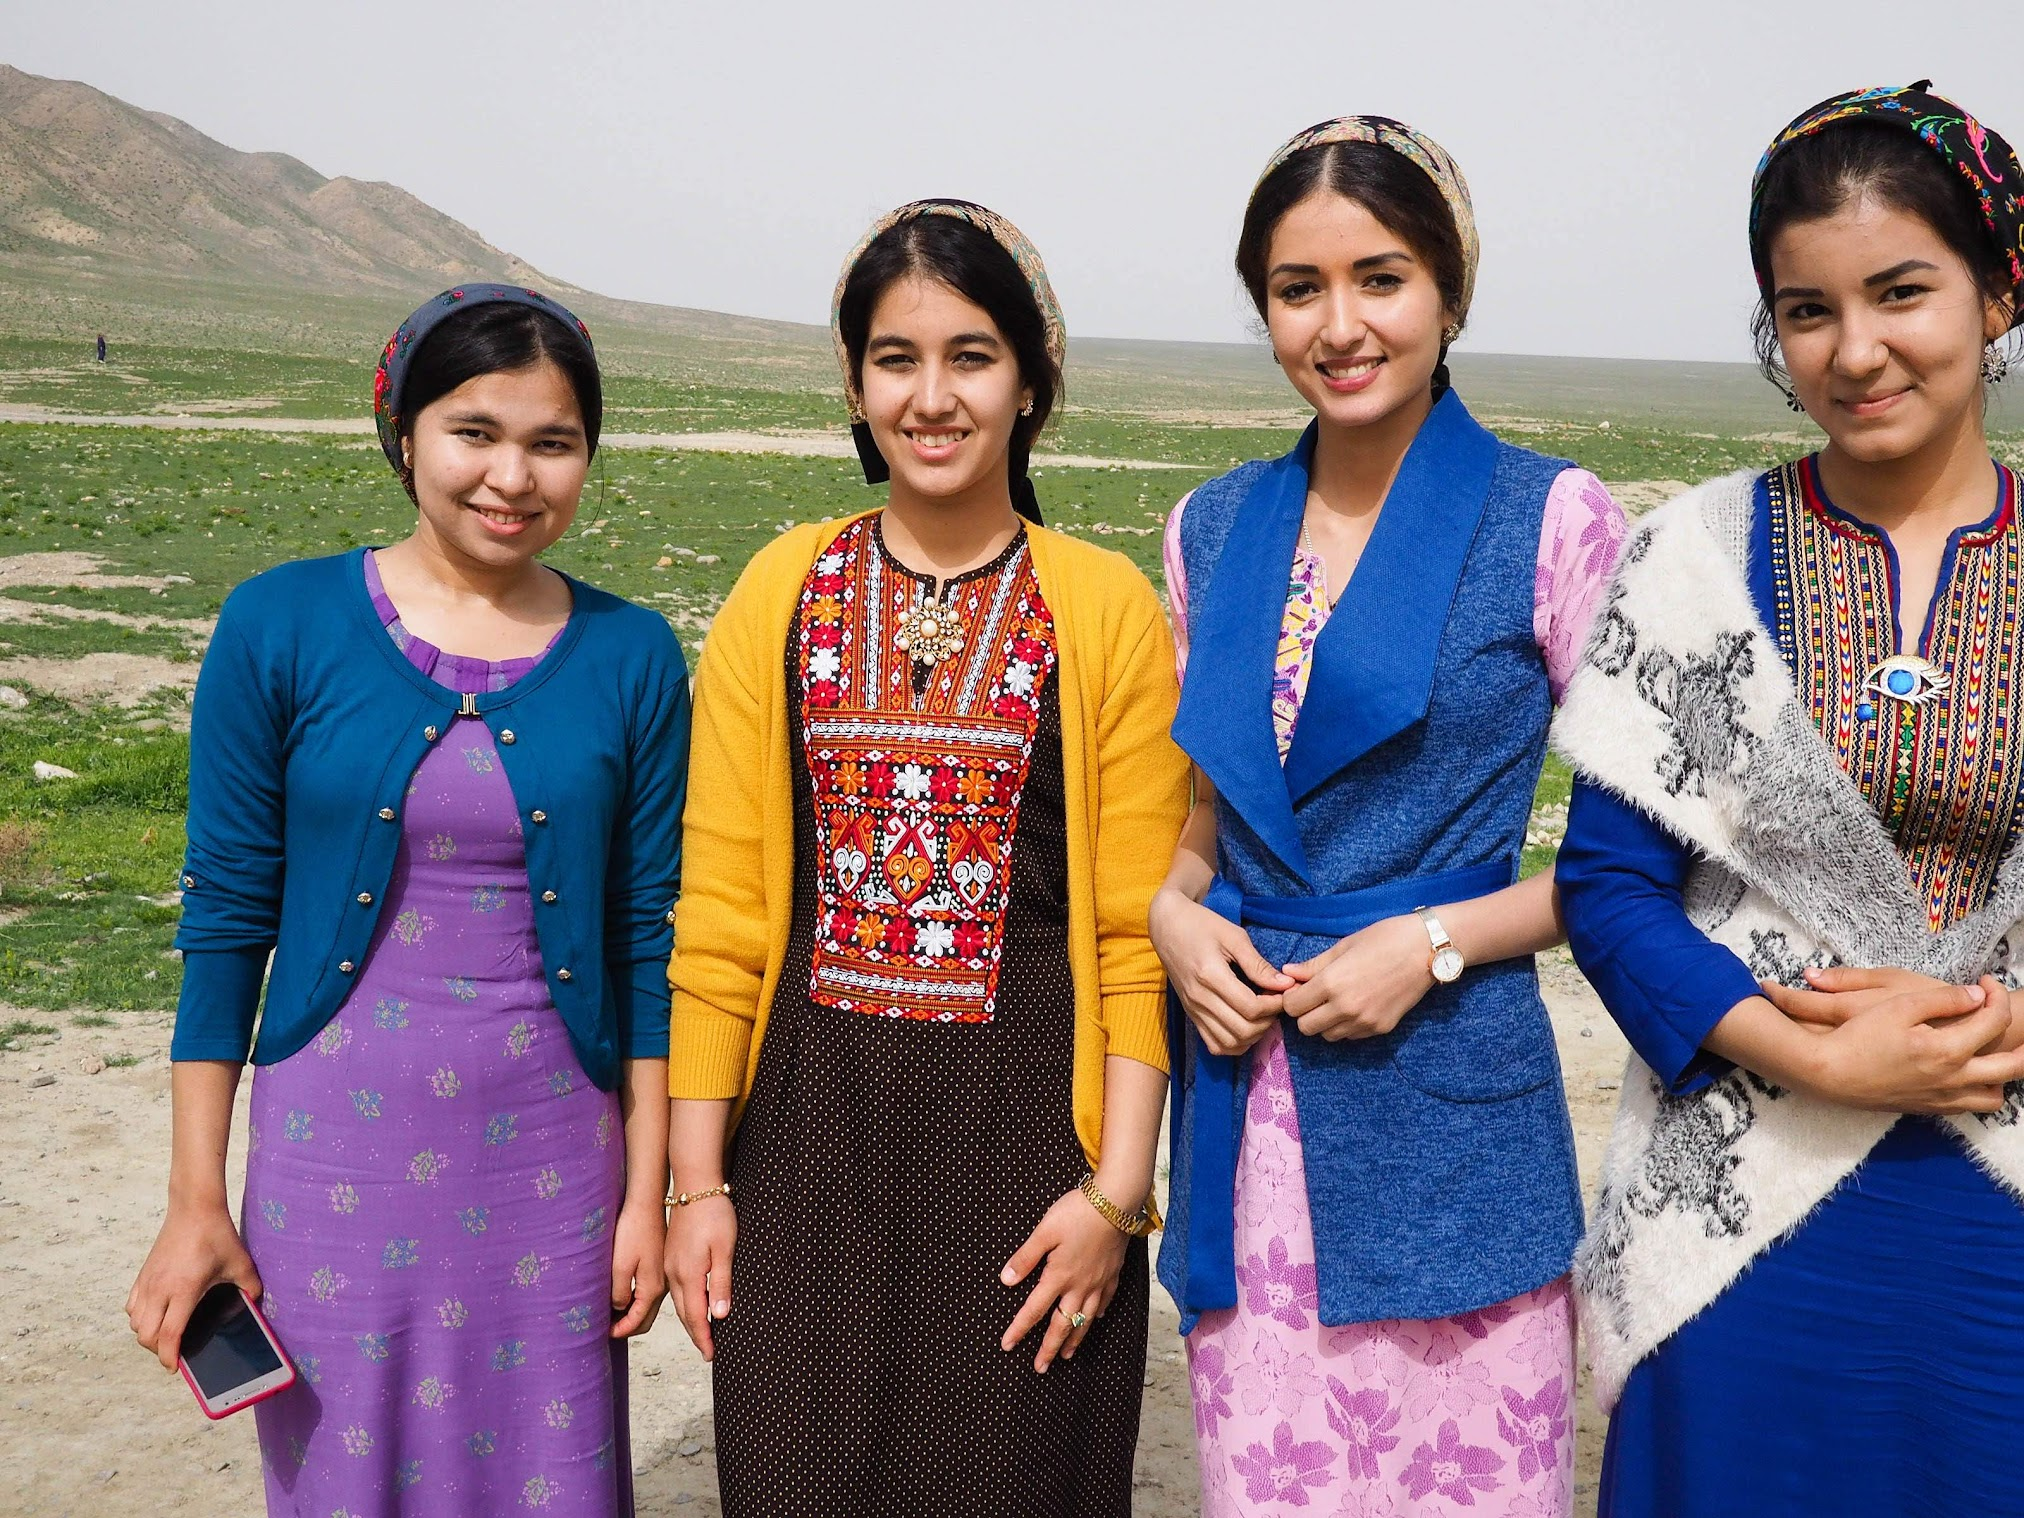 Colorful dresses of local young women in Turkmenistan